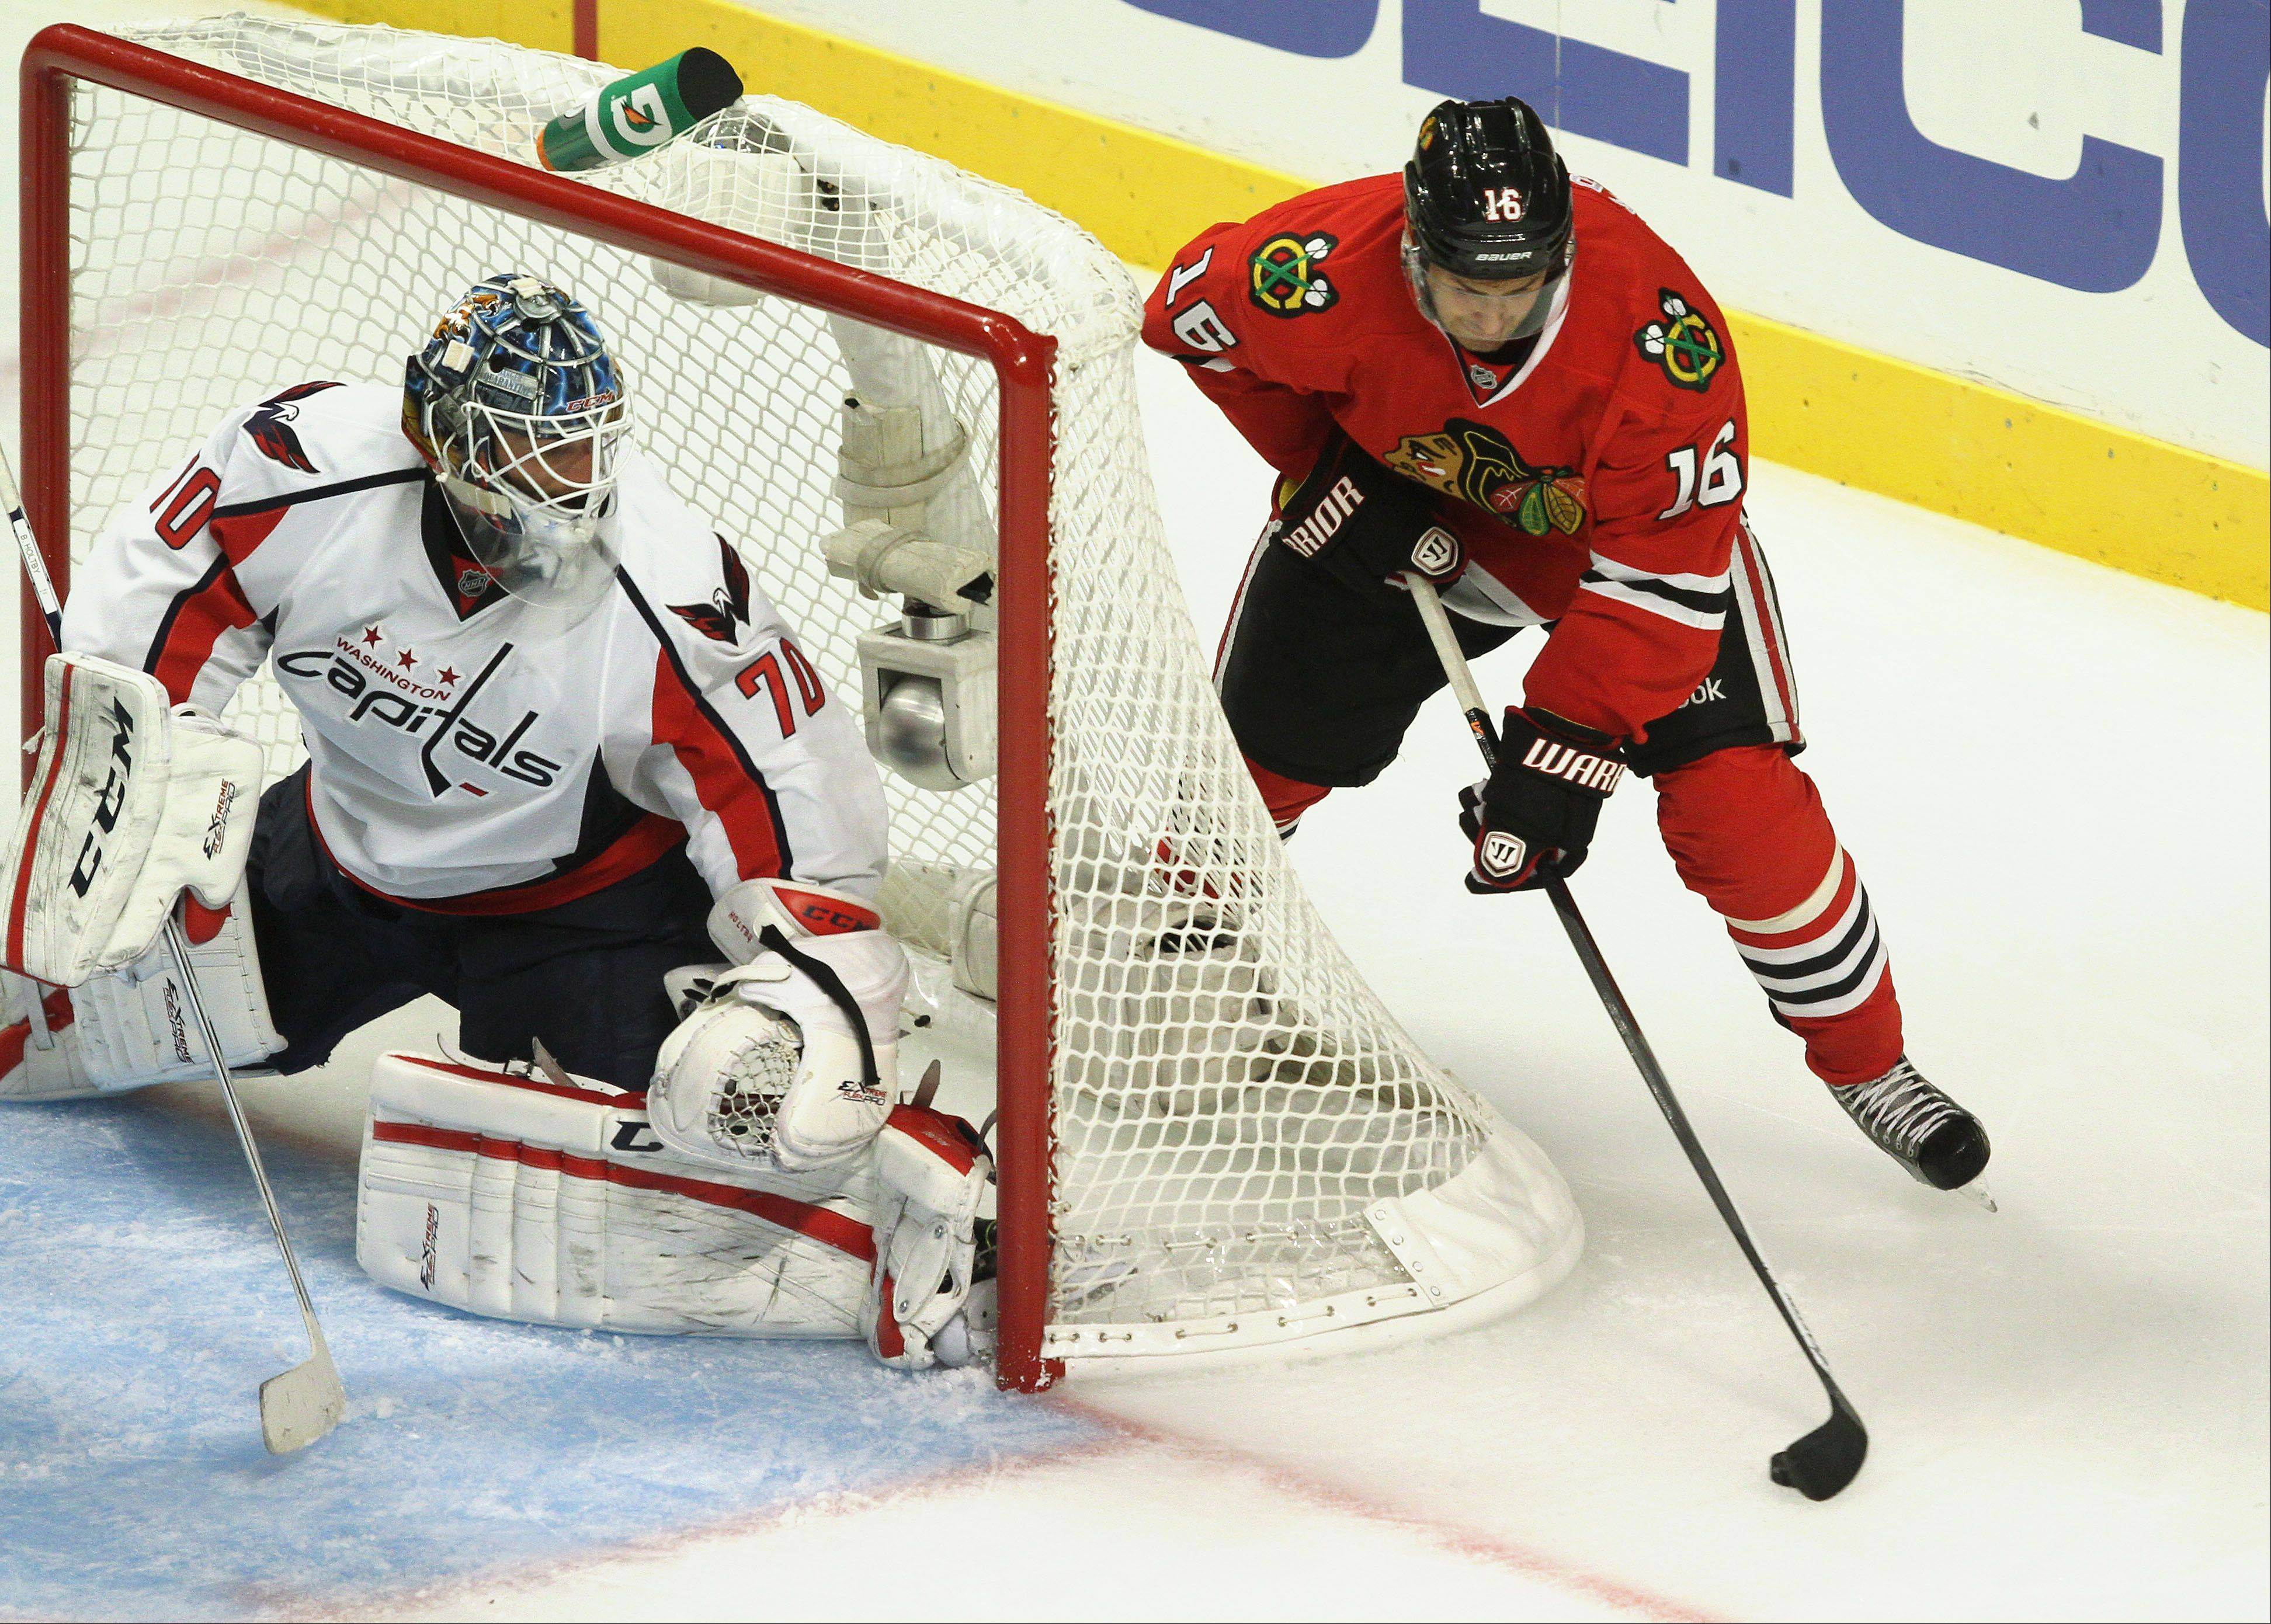 Chicago Blackhawks center Marcus Kruger tries a move on Washington Capitals goalie Braden Holtby.